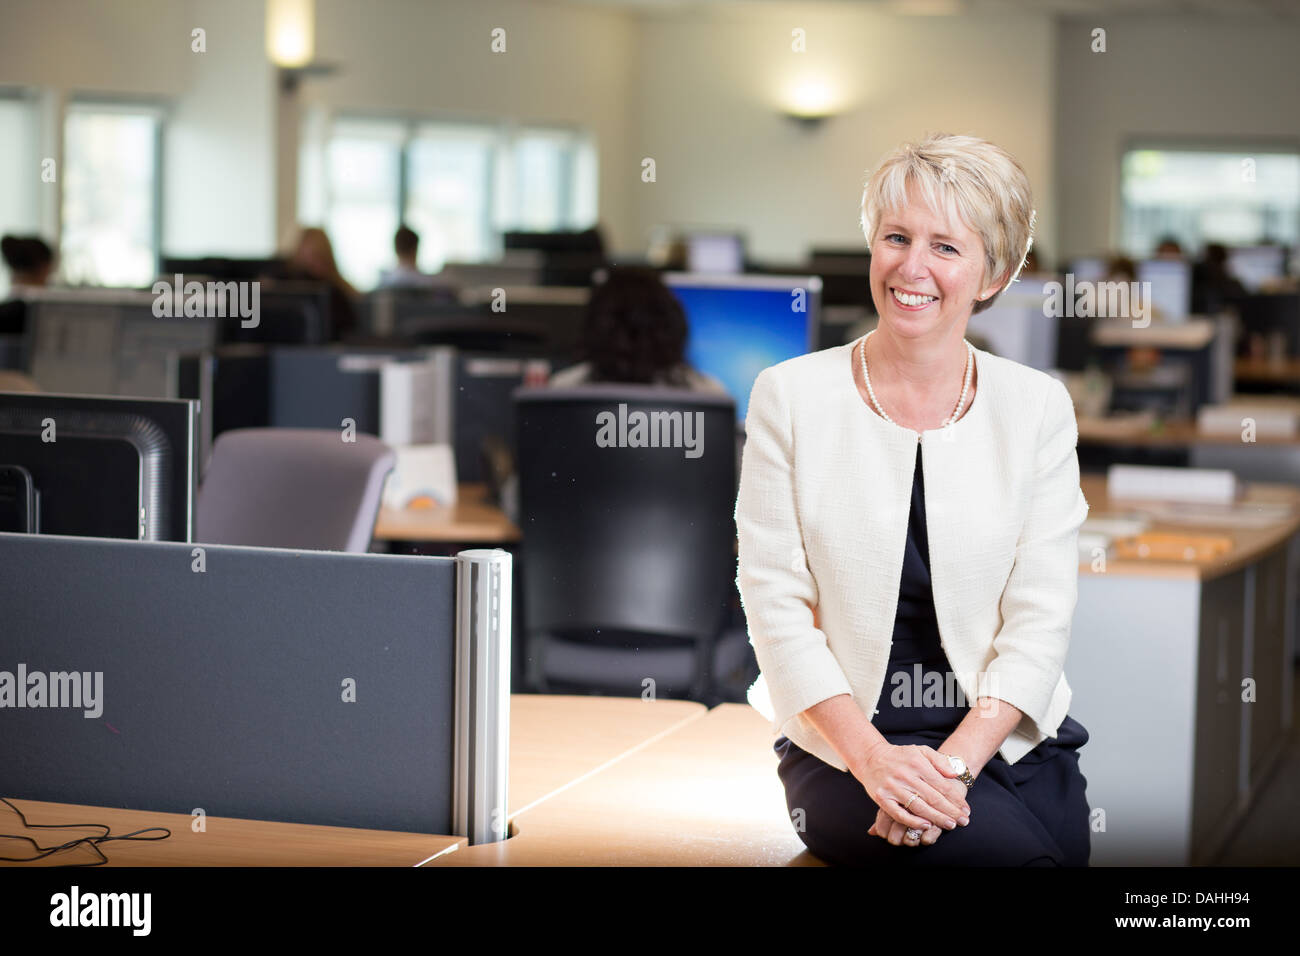 9/4/13 Nicola Hurst , CEO of MyCSP , pictured at MyCSP, City Square, Liverpool. - Stock Image